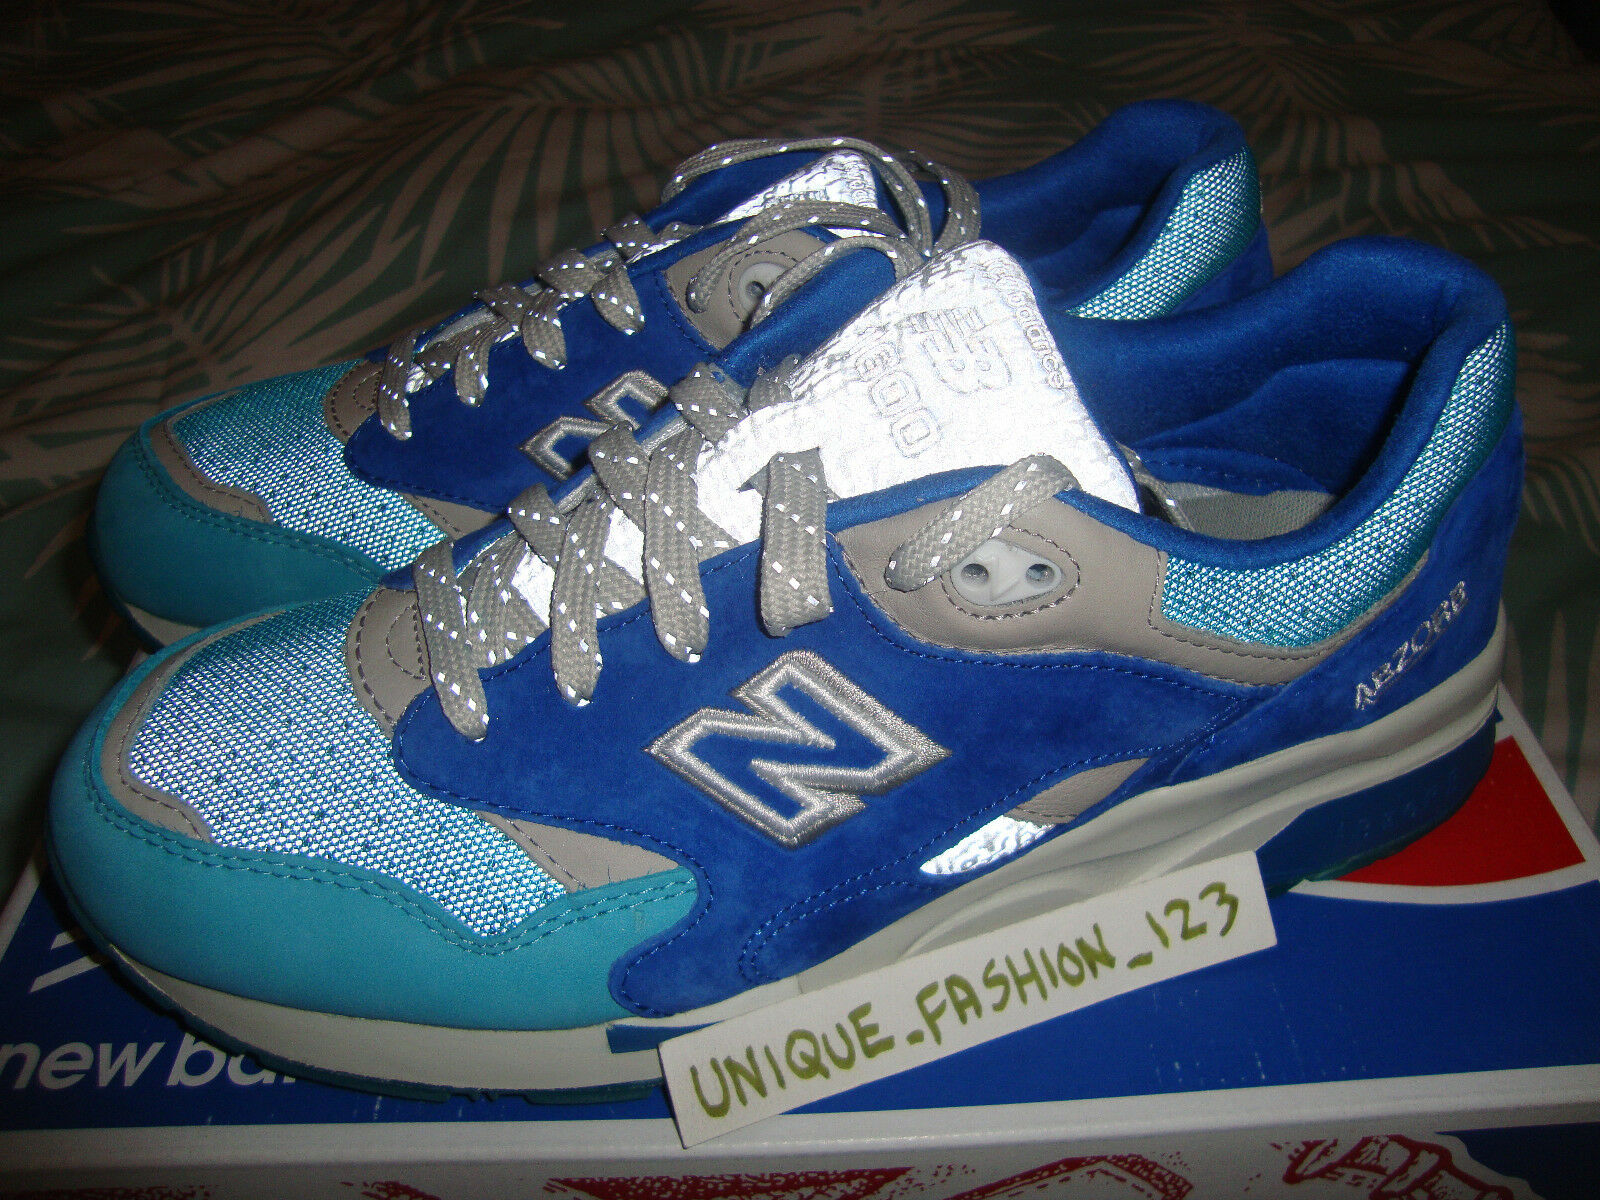 NEW BALANCE 1600 NICE KICKS GRAND ANSE US 10 FIEG DAYTONA HANON 1500